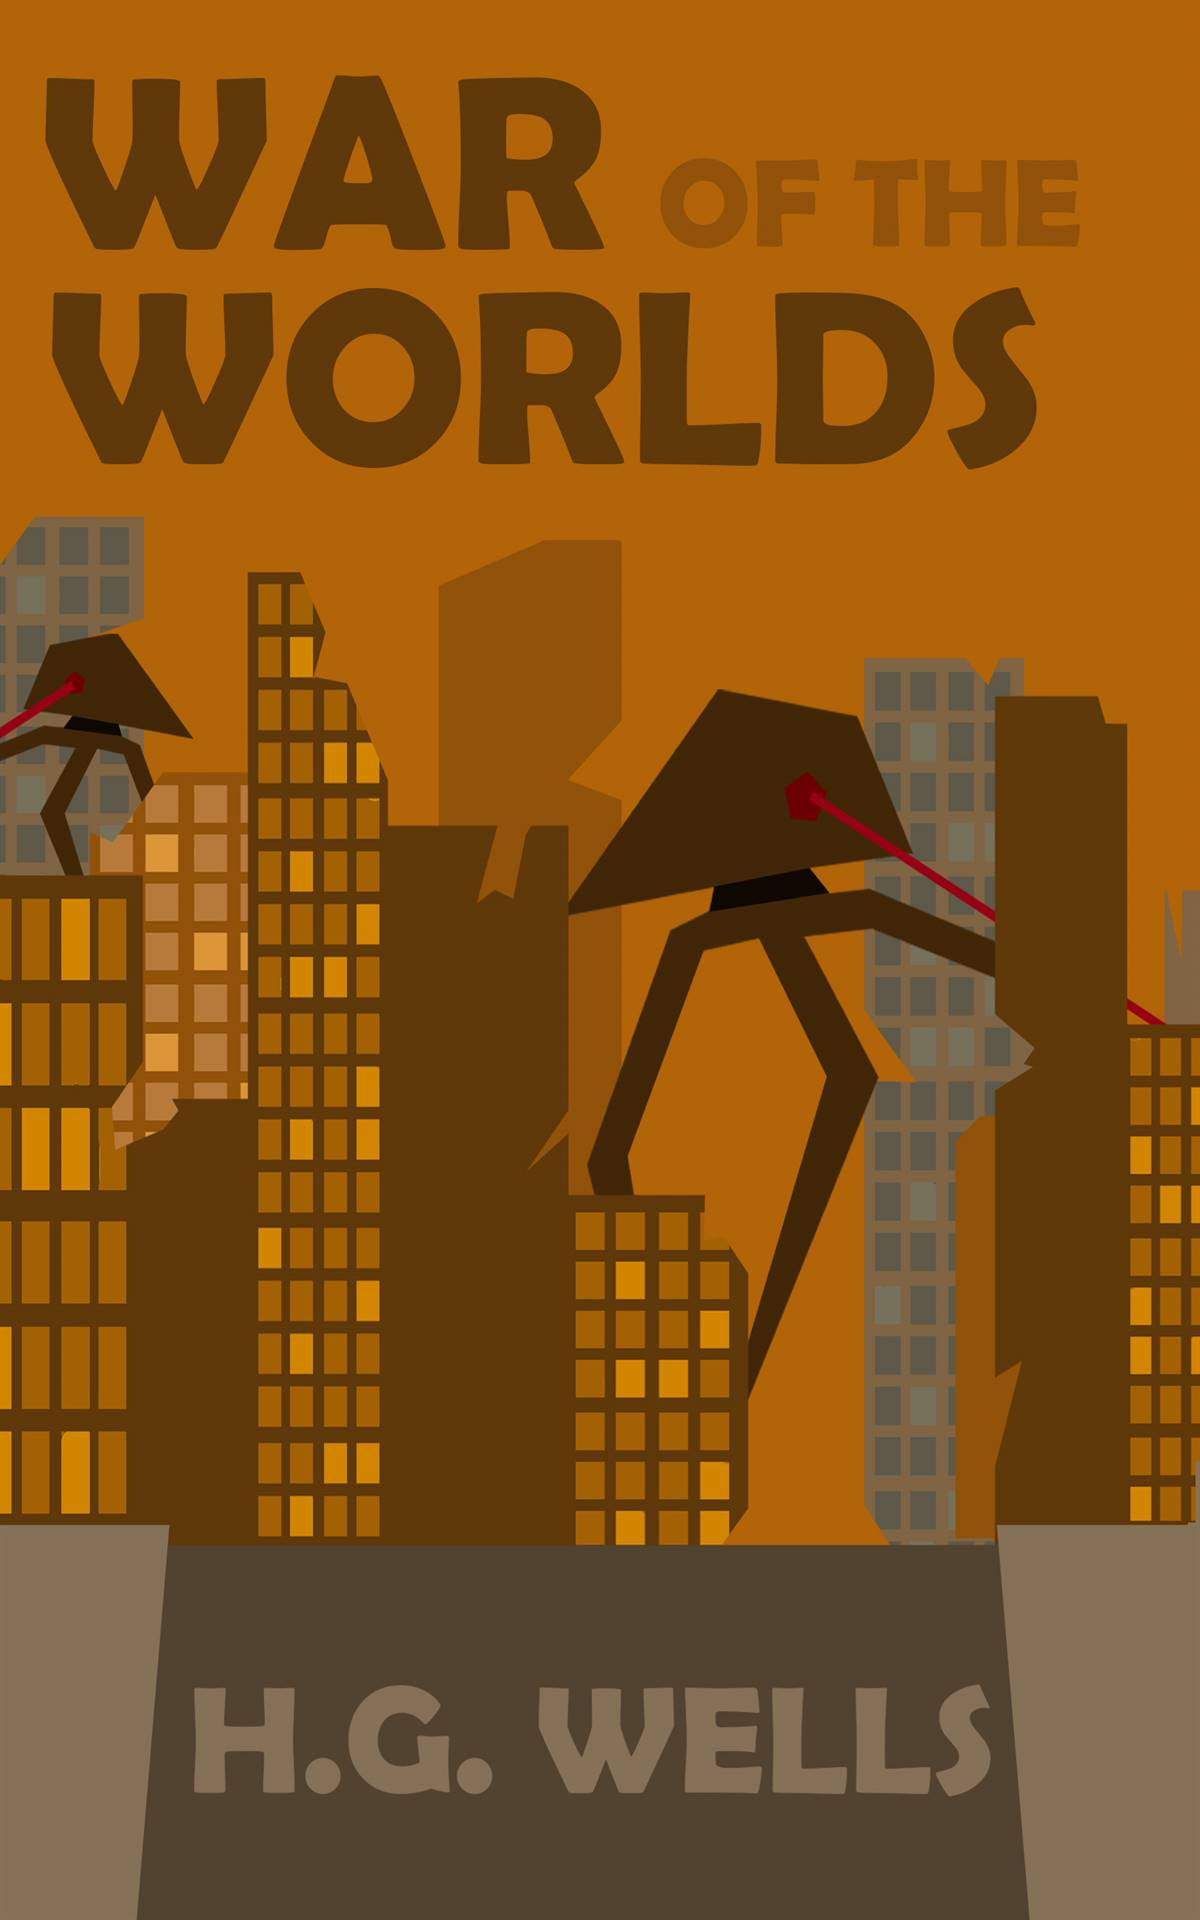 Photoshop ebook cover redesign for War of the Worlds in which a city scene has aliens among skyscrap